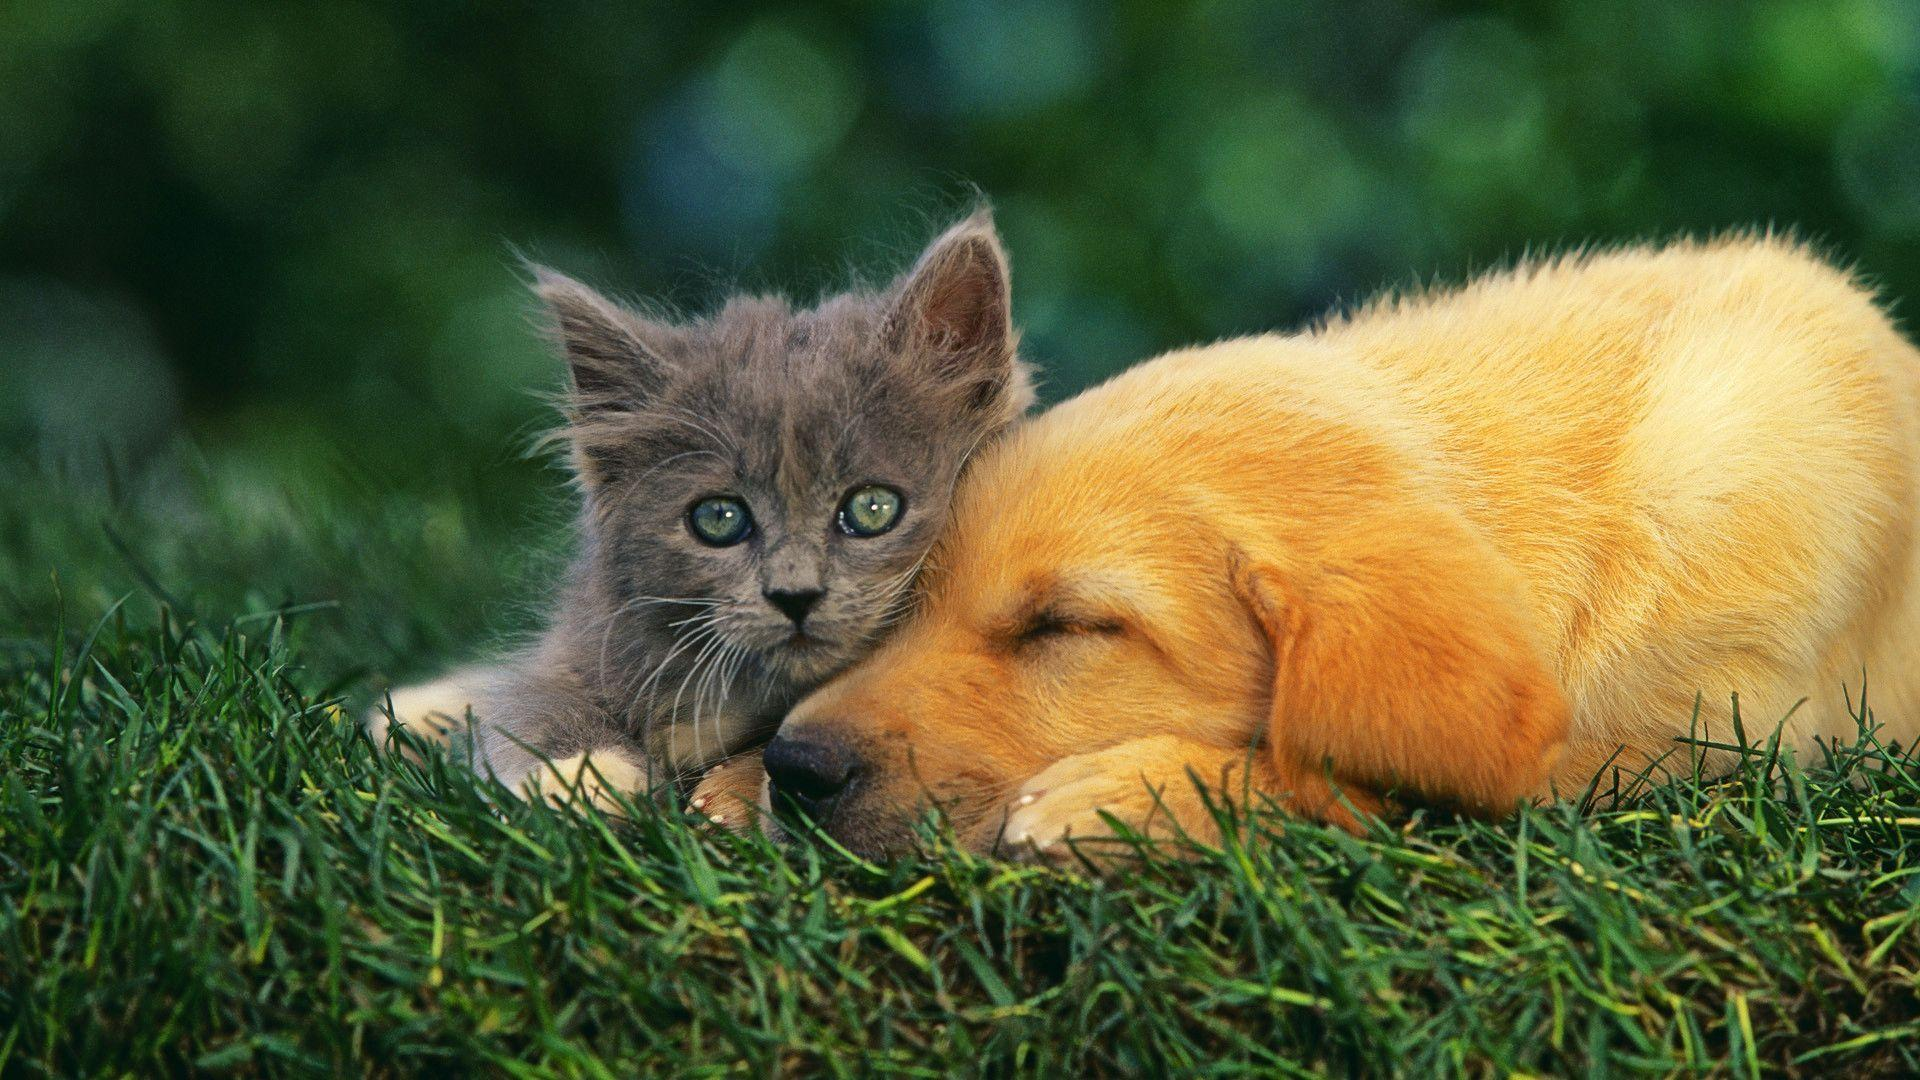 Dog And Cat Wallpapers 1920x1080